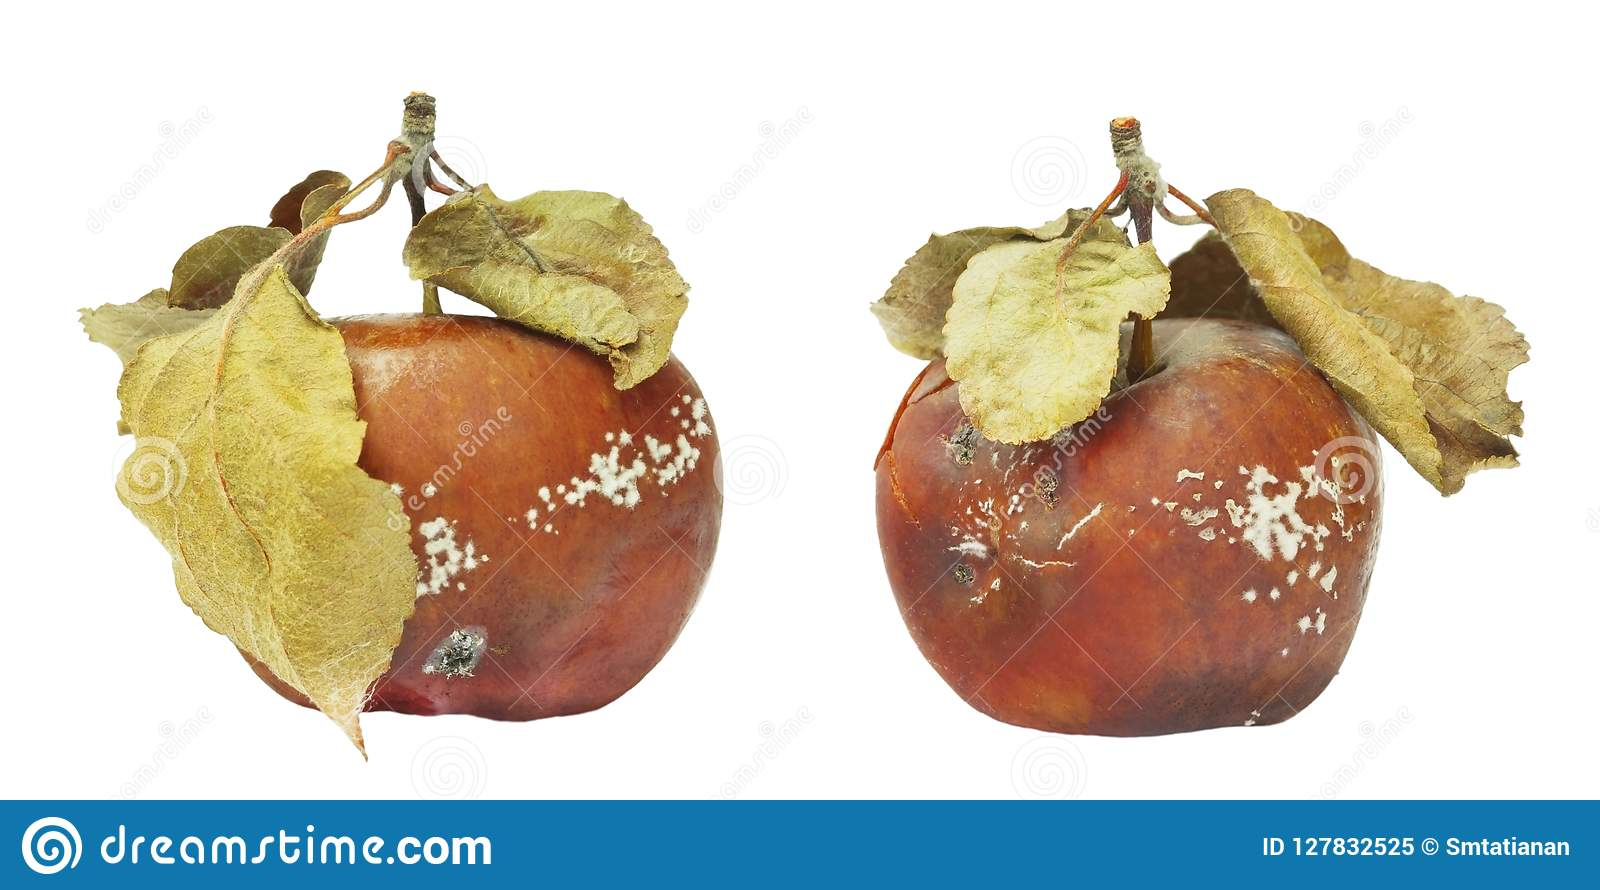 Set of mold growing on the old apple. Isolated on white background photo. Food contamination, bad spoiled disgusting rotten organi